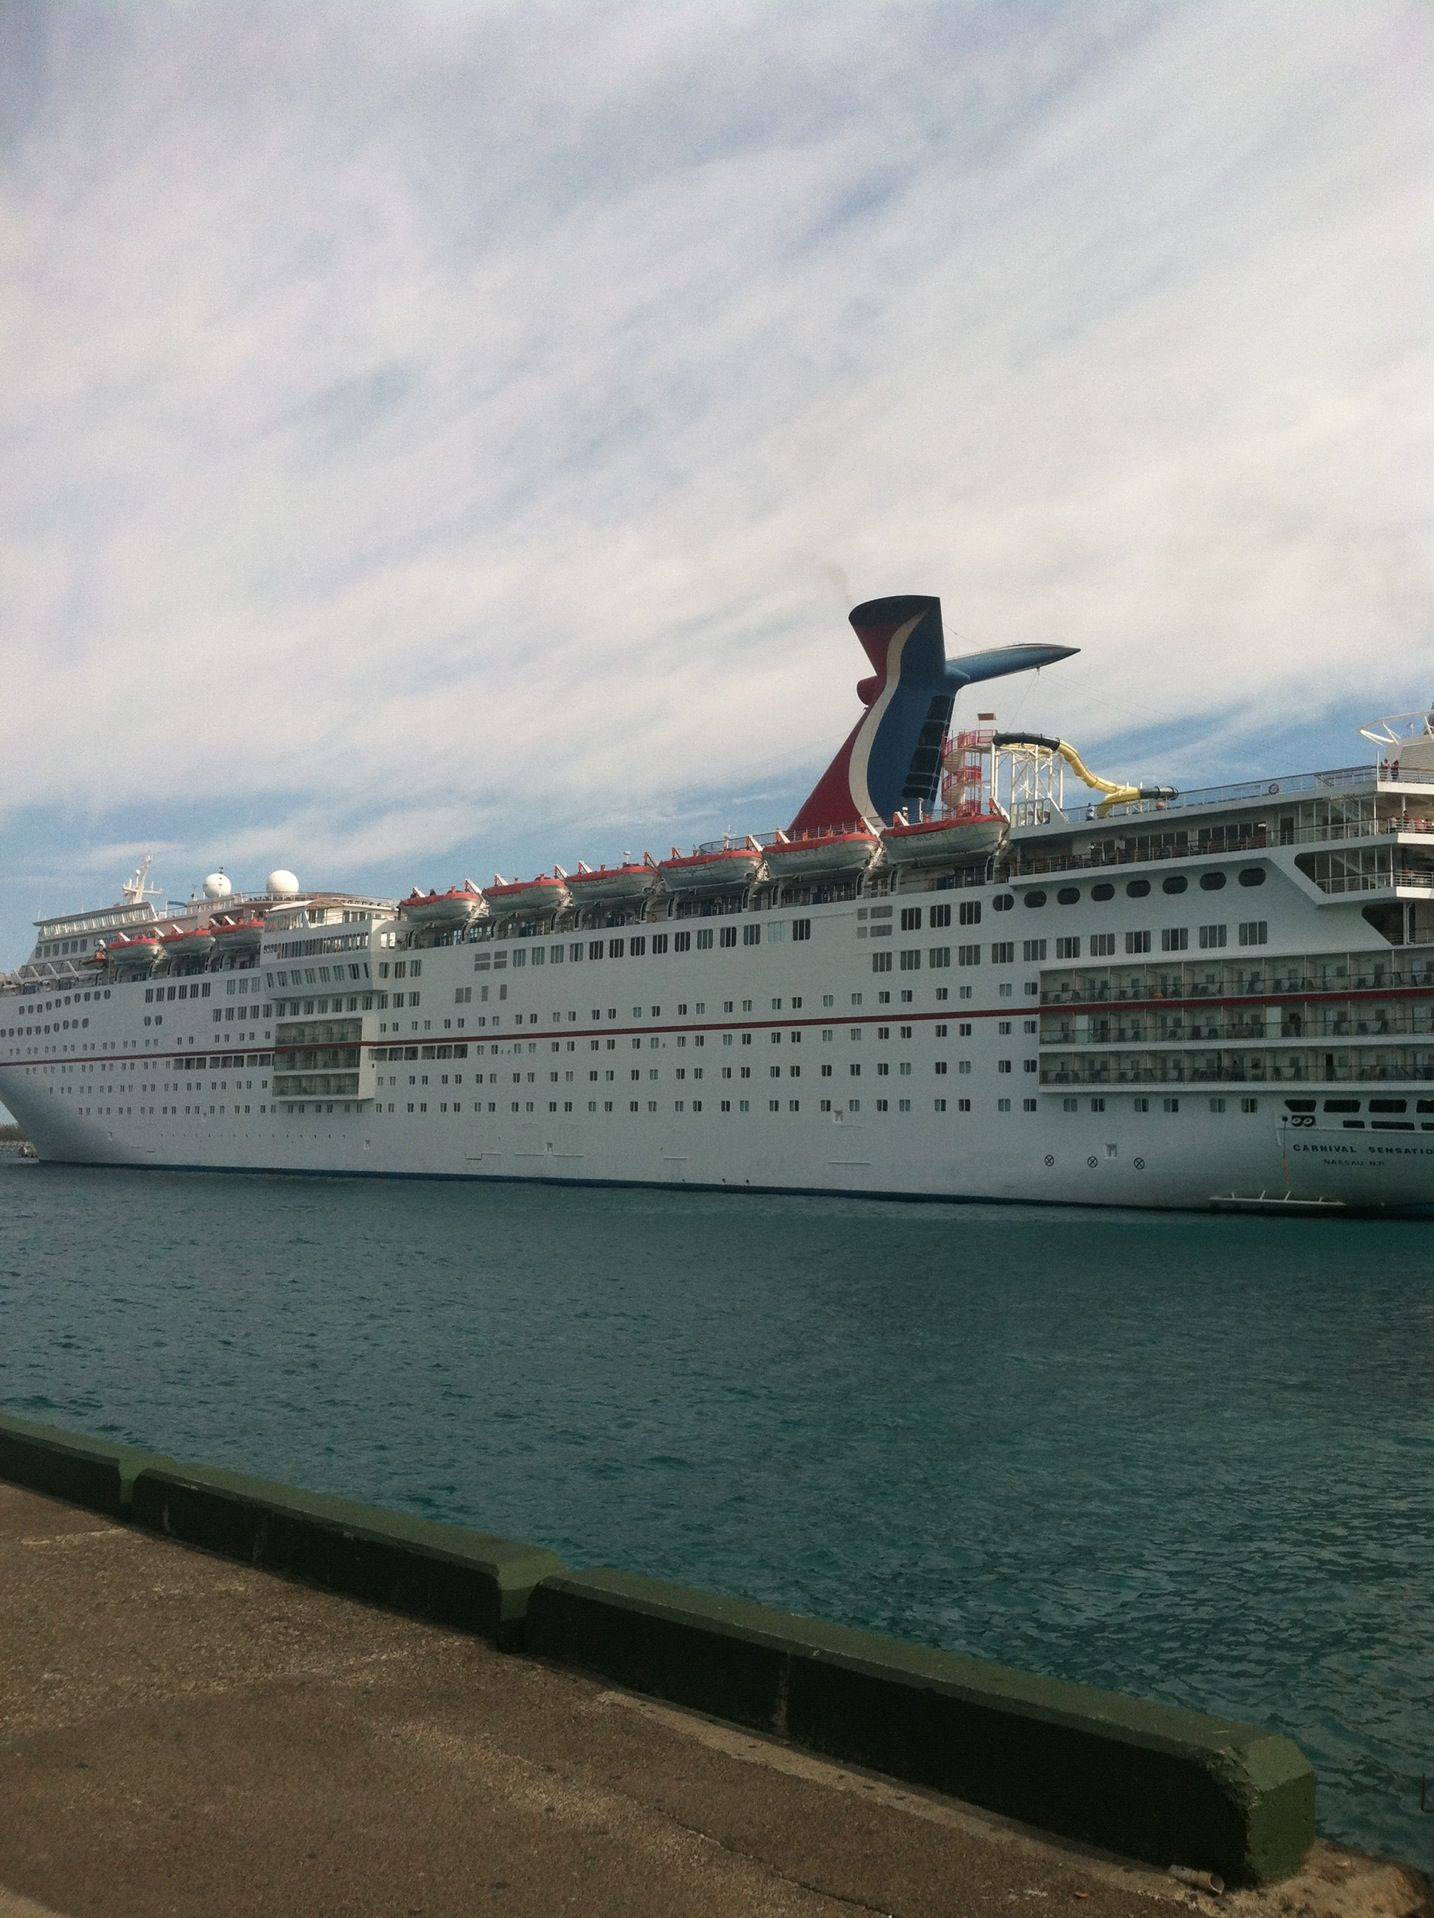 Carnival Sensation in Cape Canaveral, FL 3rd trip for Chase, Trav & Tyler.  Went to Cozumel and Grand Cayman. Went swimming with the Stingray's